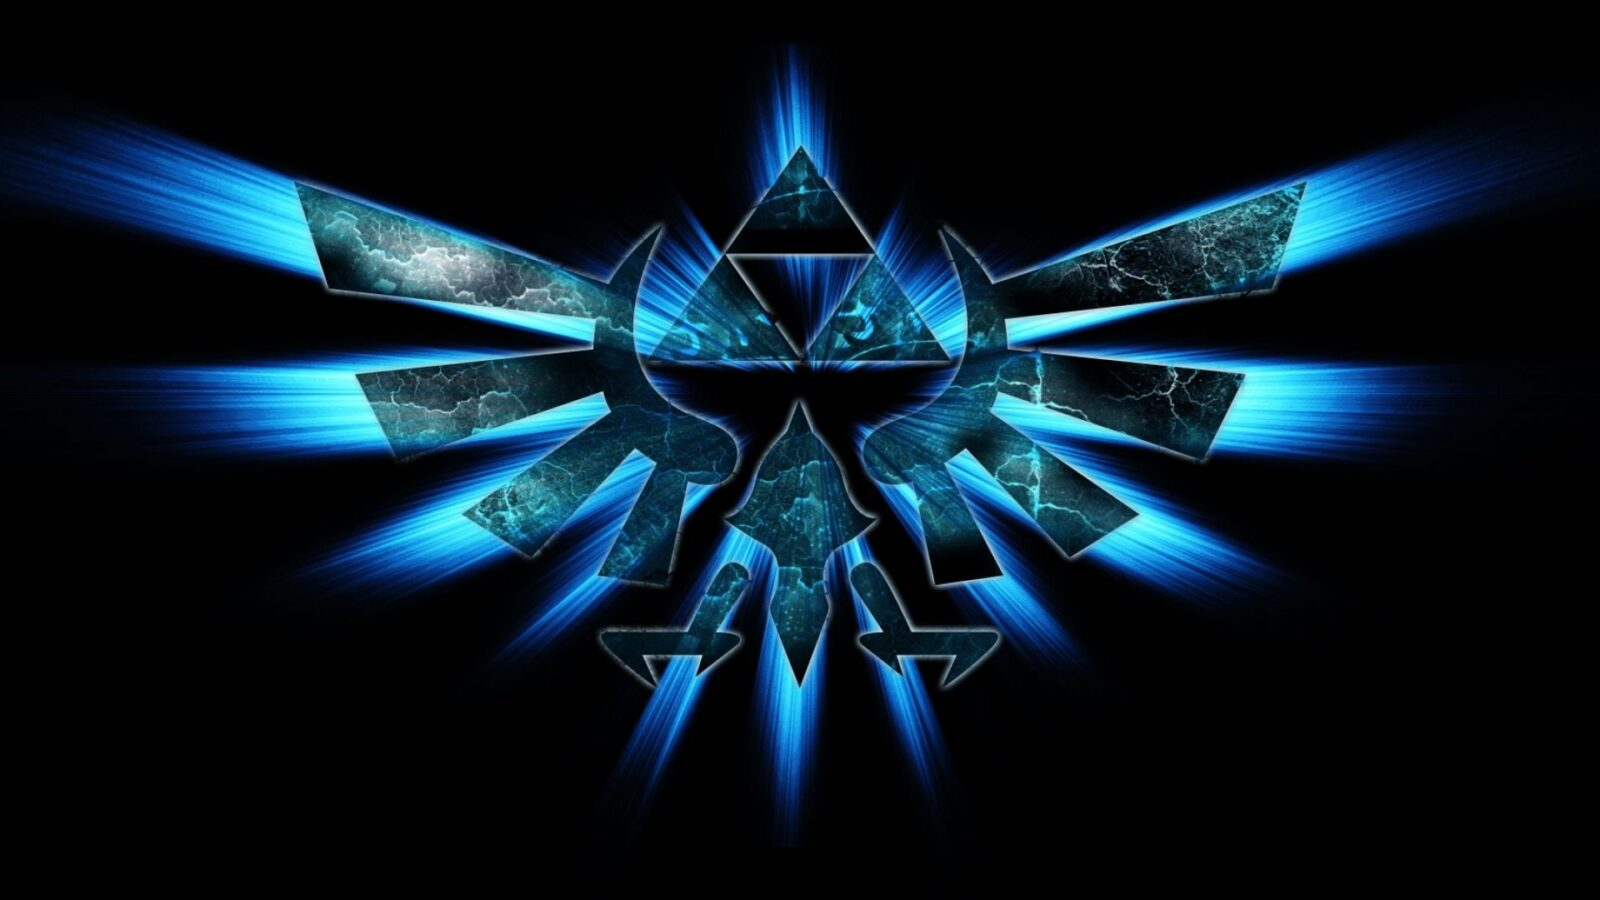 hd zelda wallpapers - photo #23